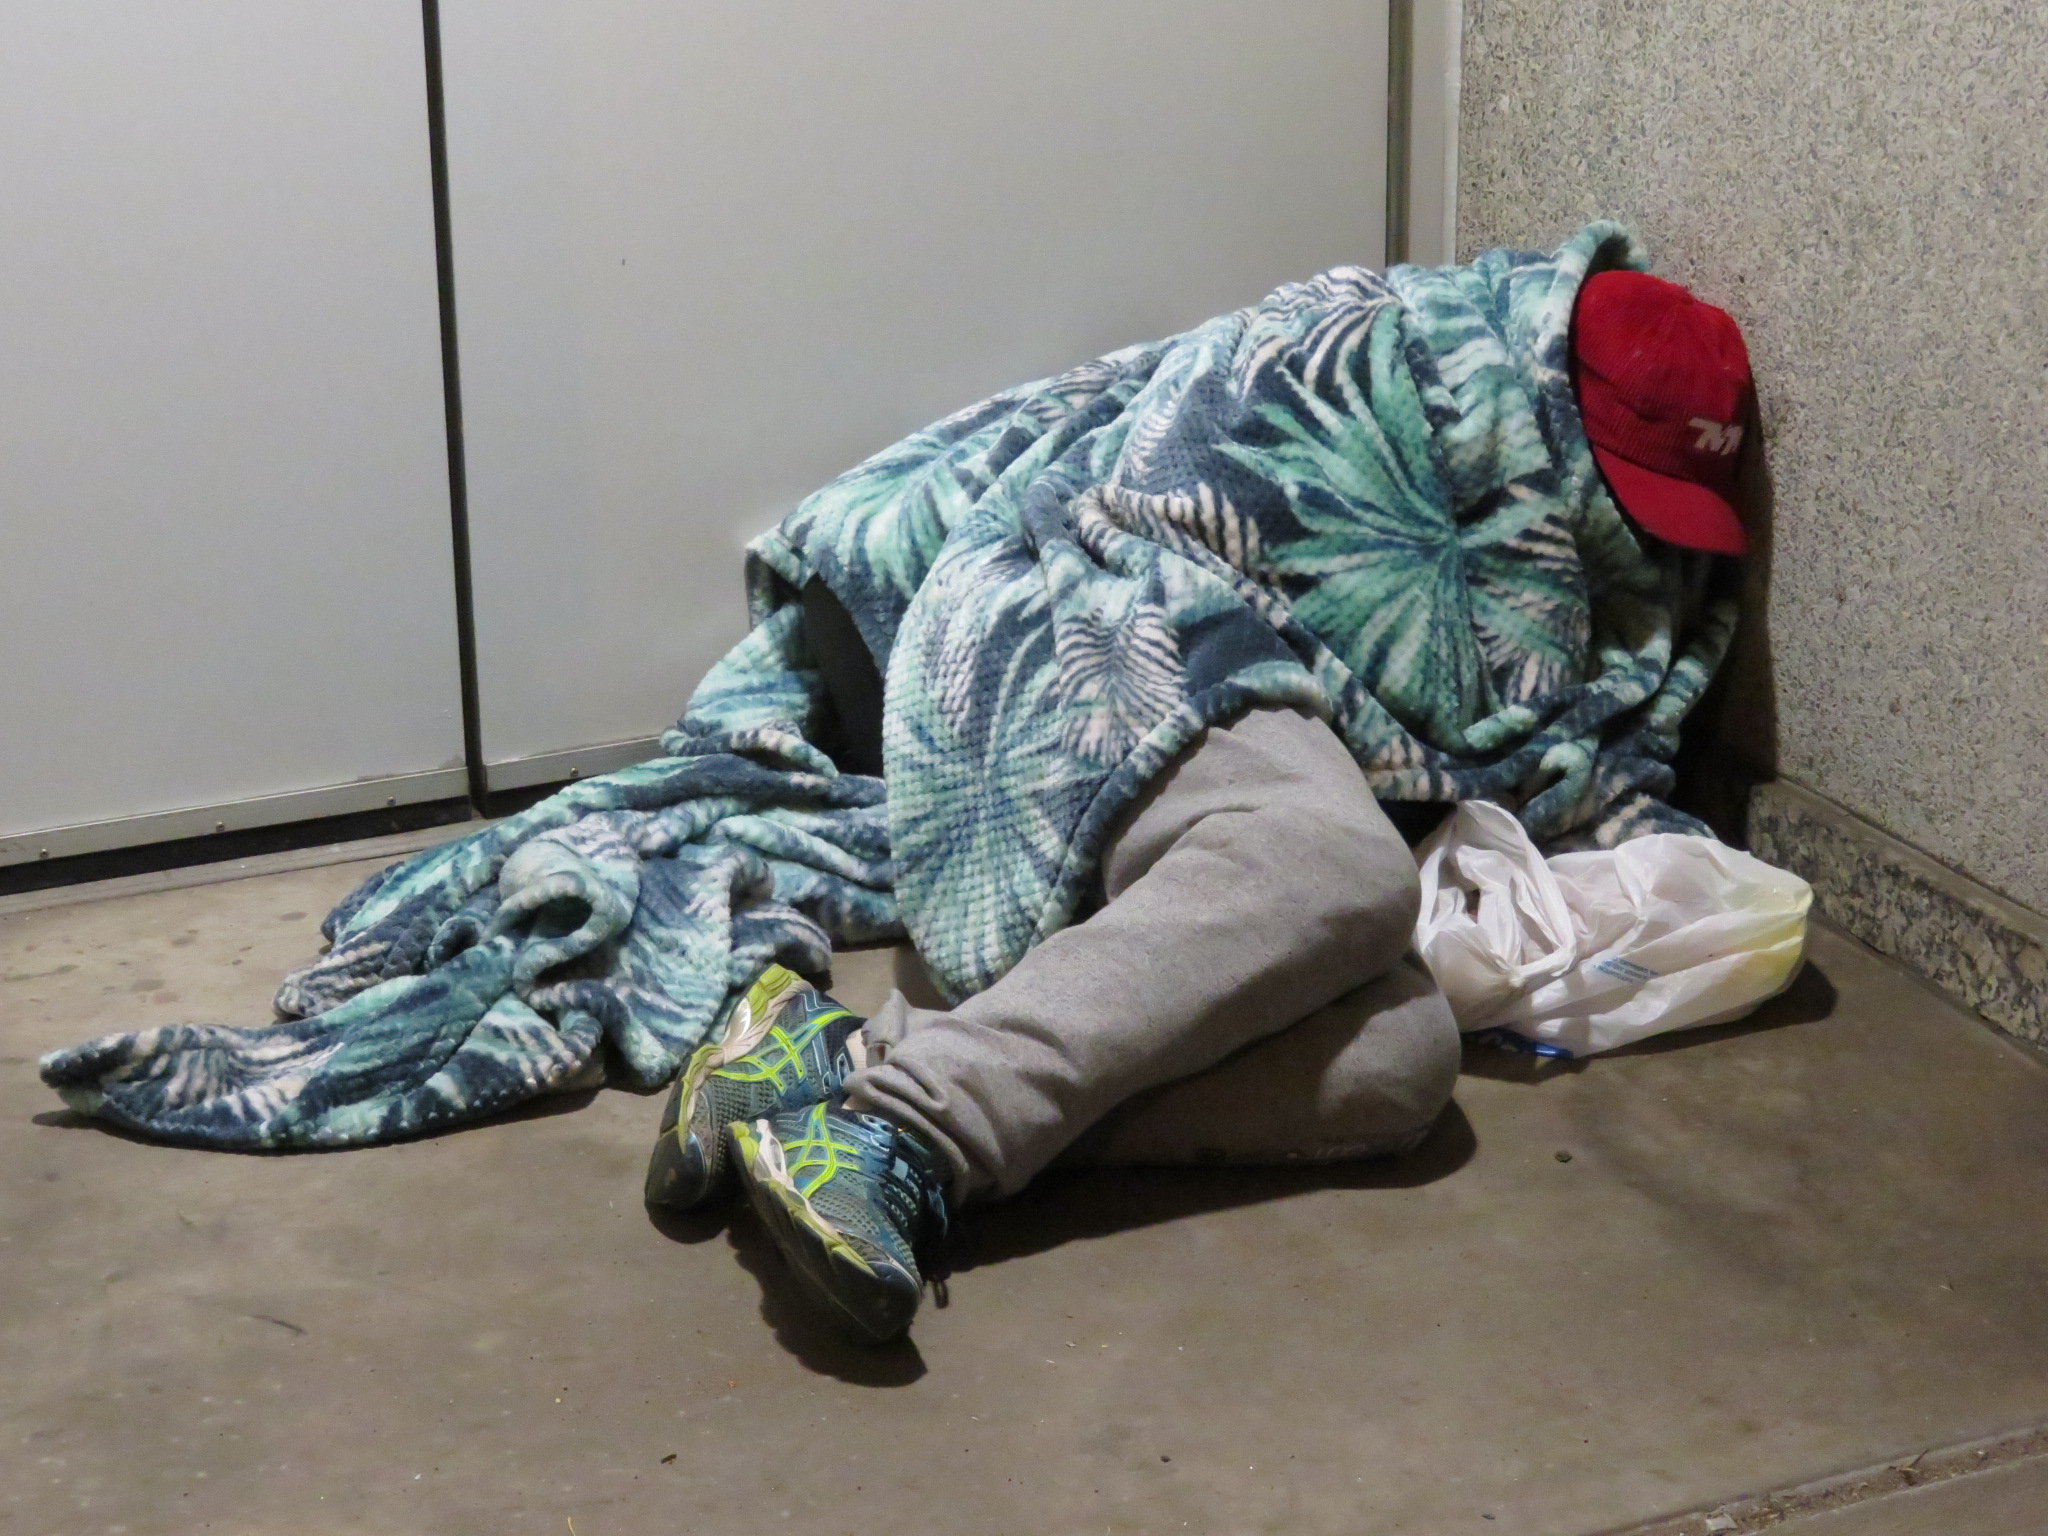 Colorado Springs unveils anti-homeless 'homelessness initiative'